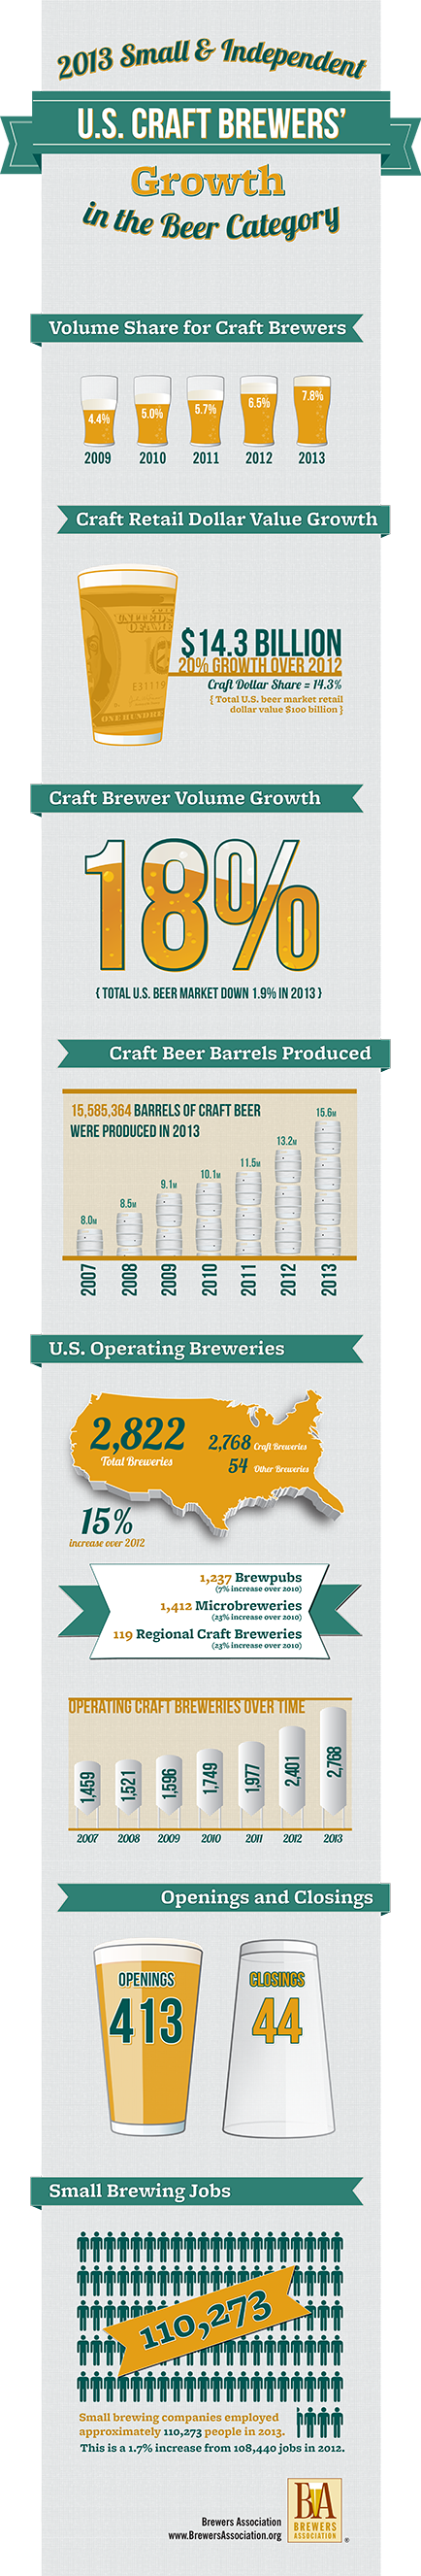 craftbeer growth infographic